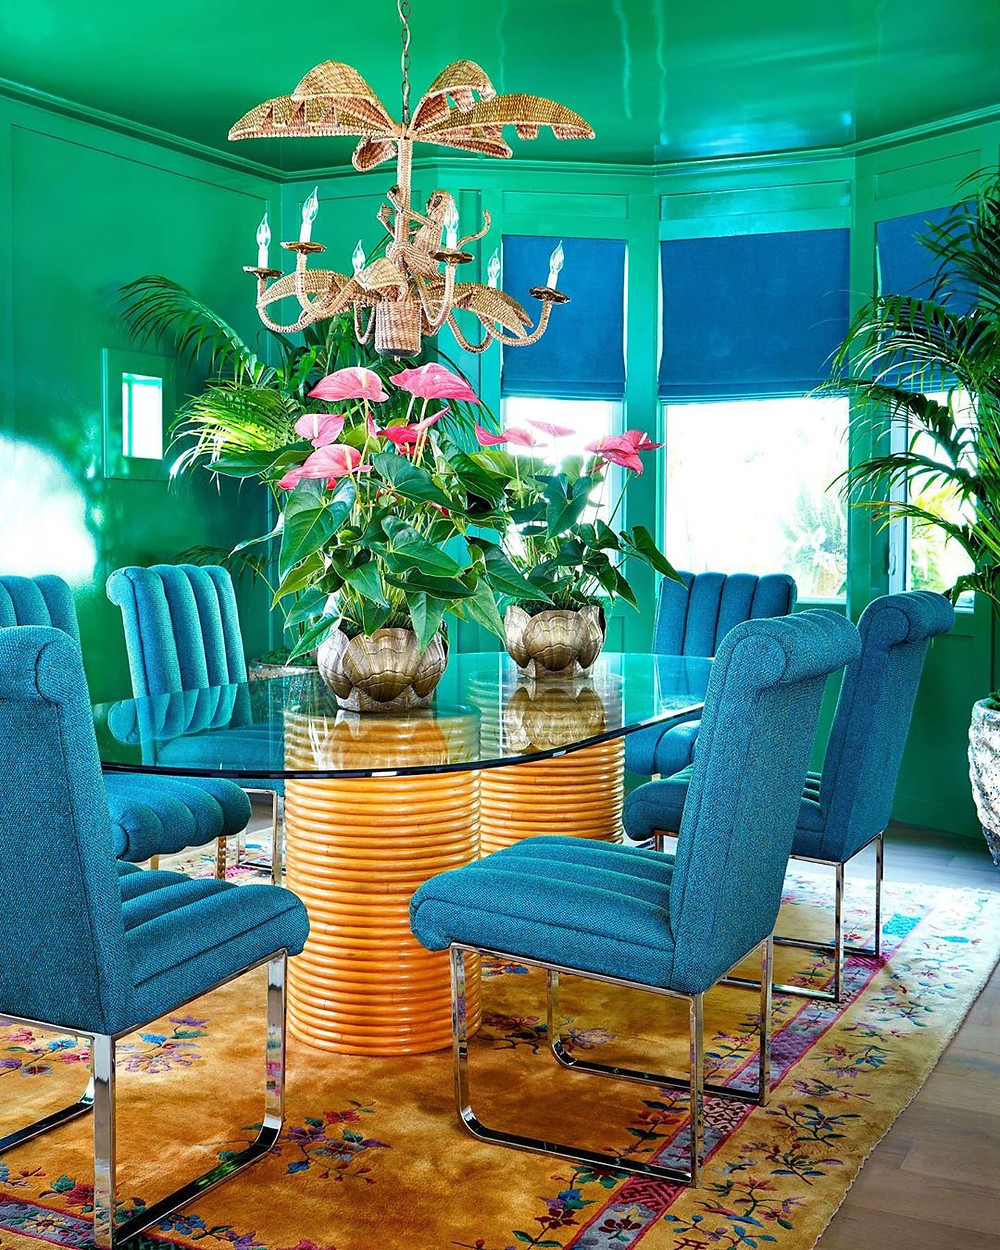 green and blue sea dining room theme with bright bold colors